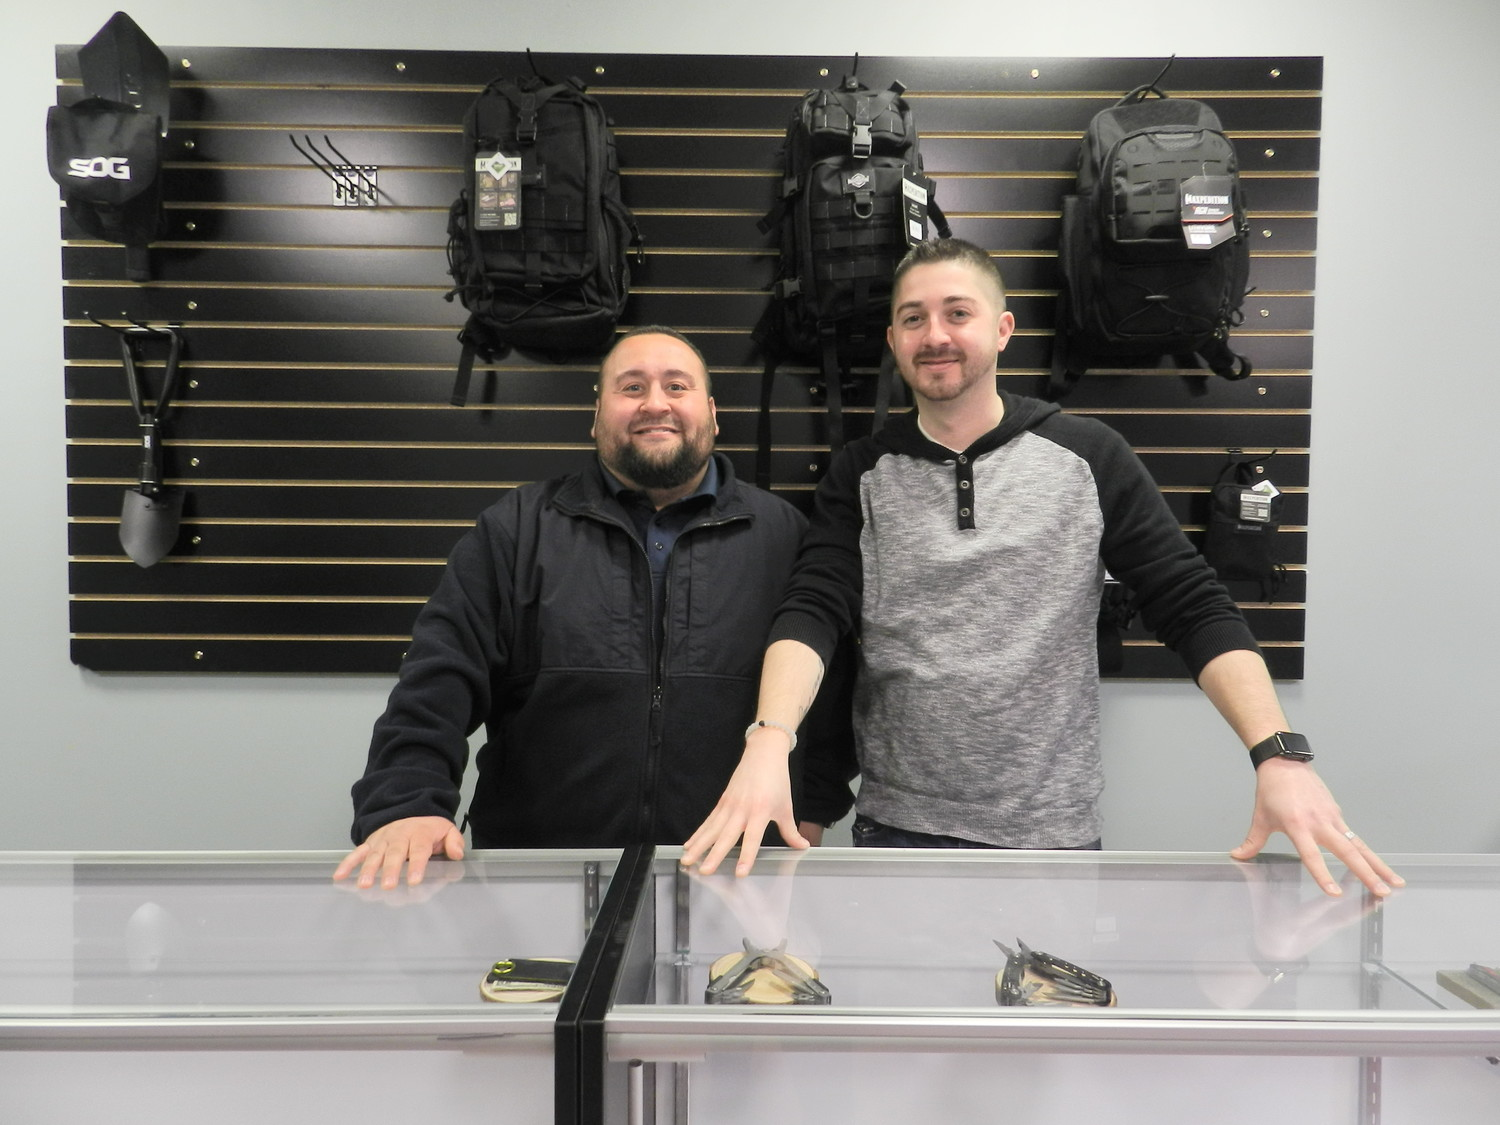 Co-owners Michael Grimaldi, left, and Brett Newman decided to open L.I. Tactical when they discovered they shared a passion for everyday carry tools.